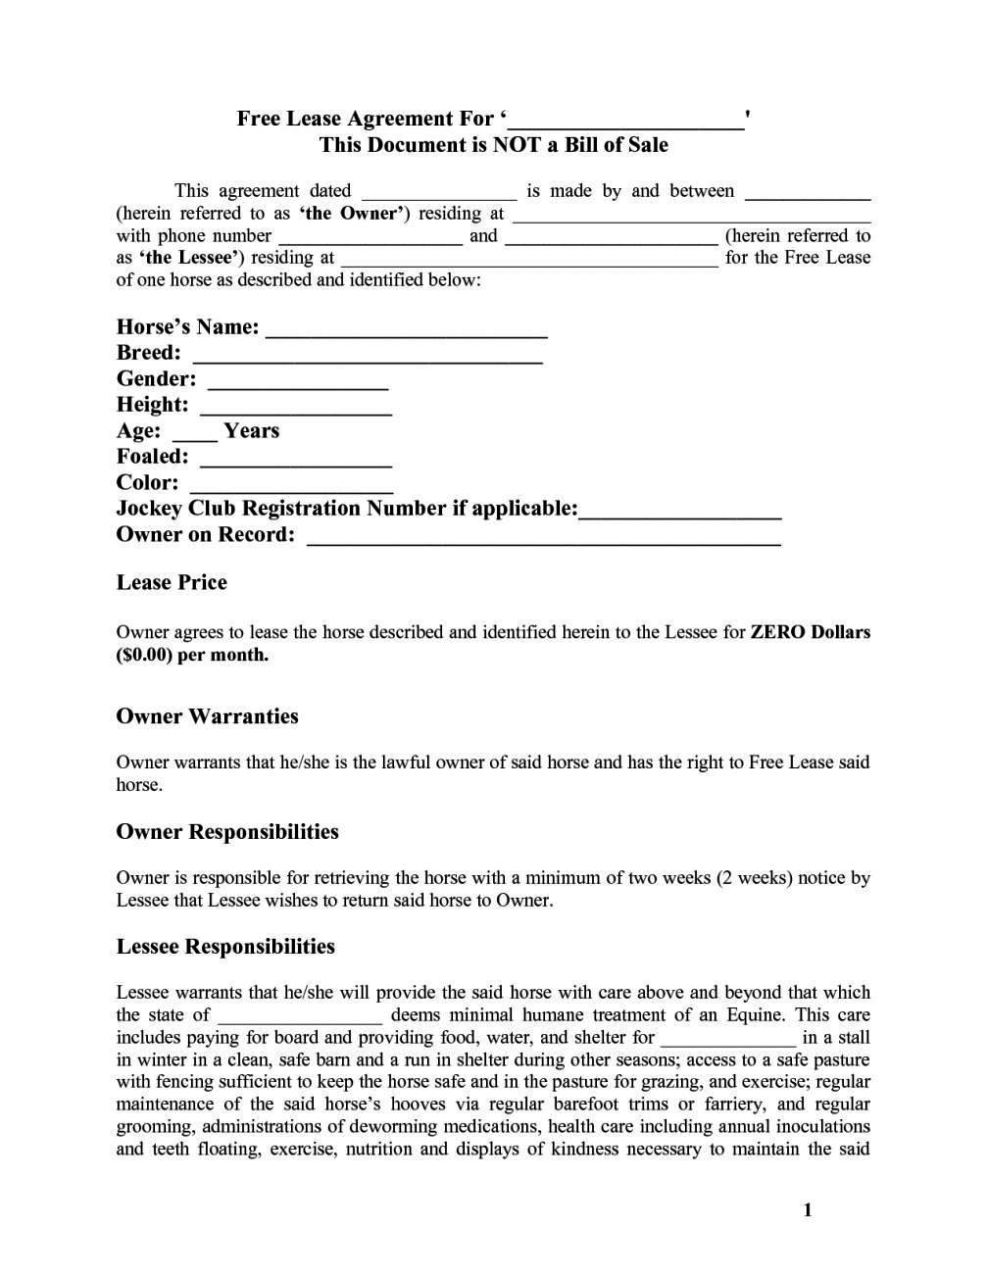 Free Simple Lease Agreement Template SampleTemplatess Free Simple Lease  Agreement Template Free Simple Lease Agreement Template  Free Simple Lease Agreement Template